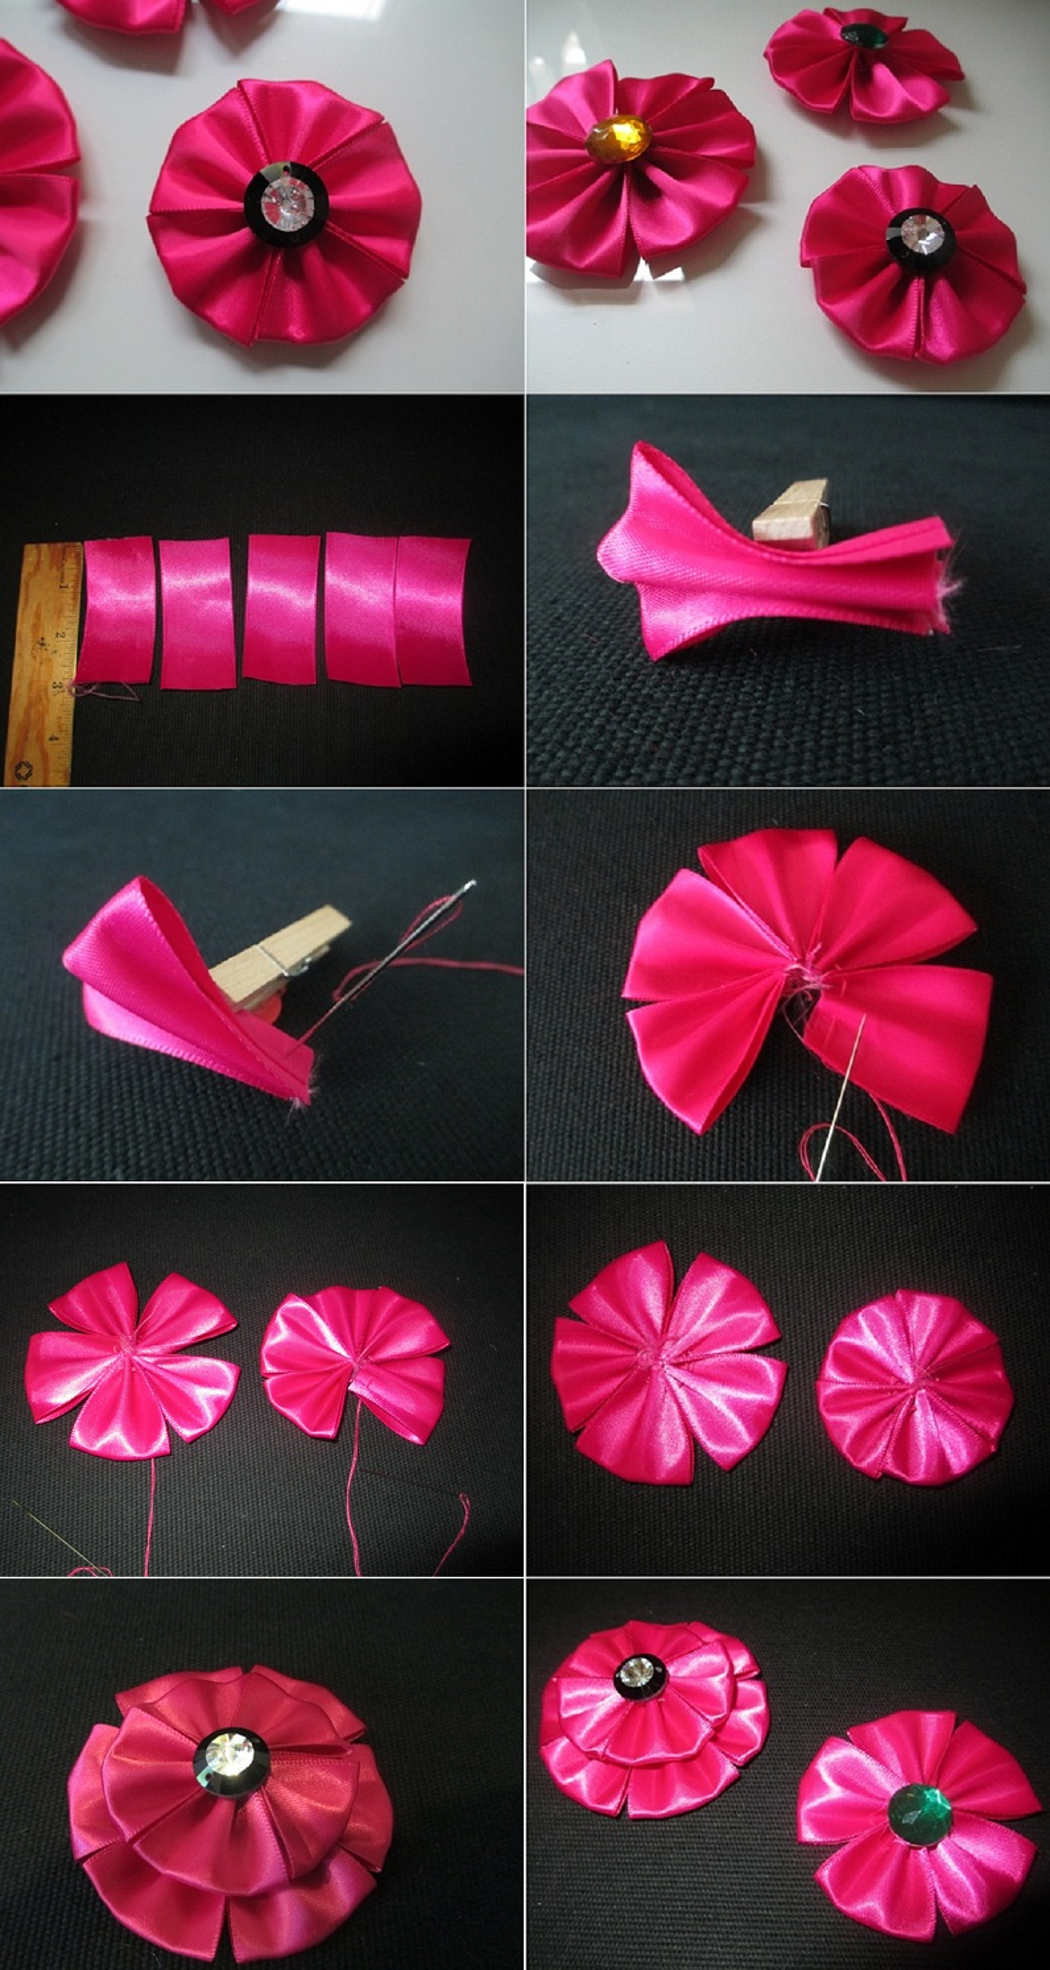 Diy Tutorial Fabric Flowers How To Make A Ribbon Flower For Hair Clips Brooches Bead Cord Fabric Flowers Diy Ribbon Flower Tutorial Fabric Flowers